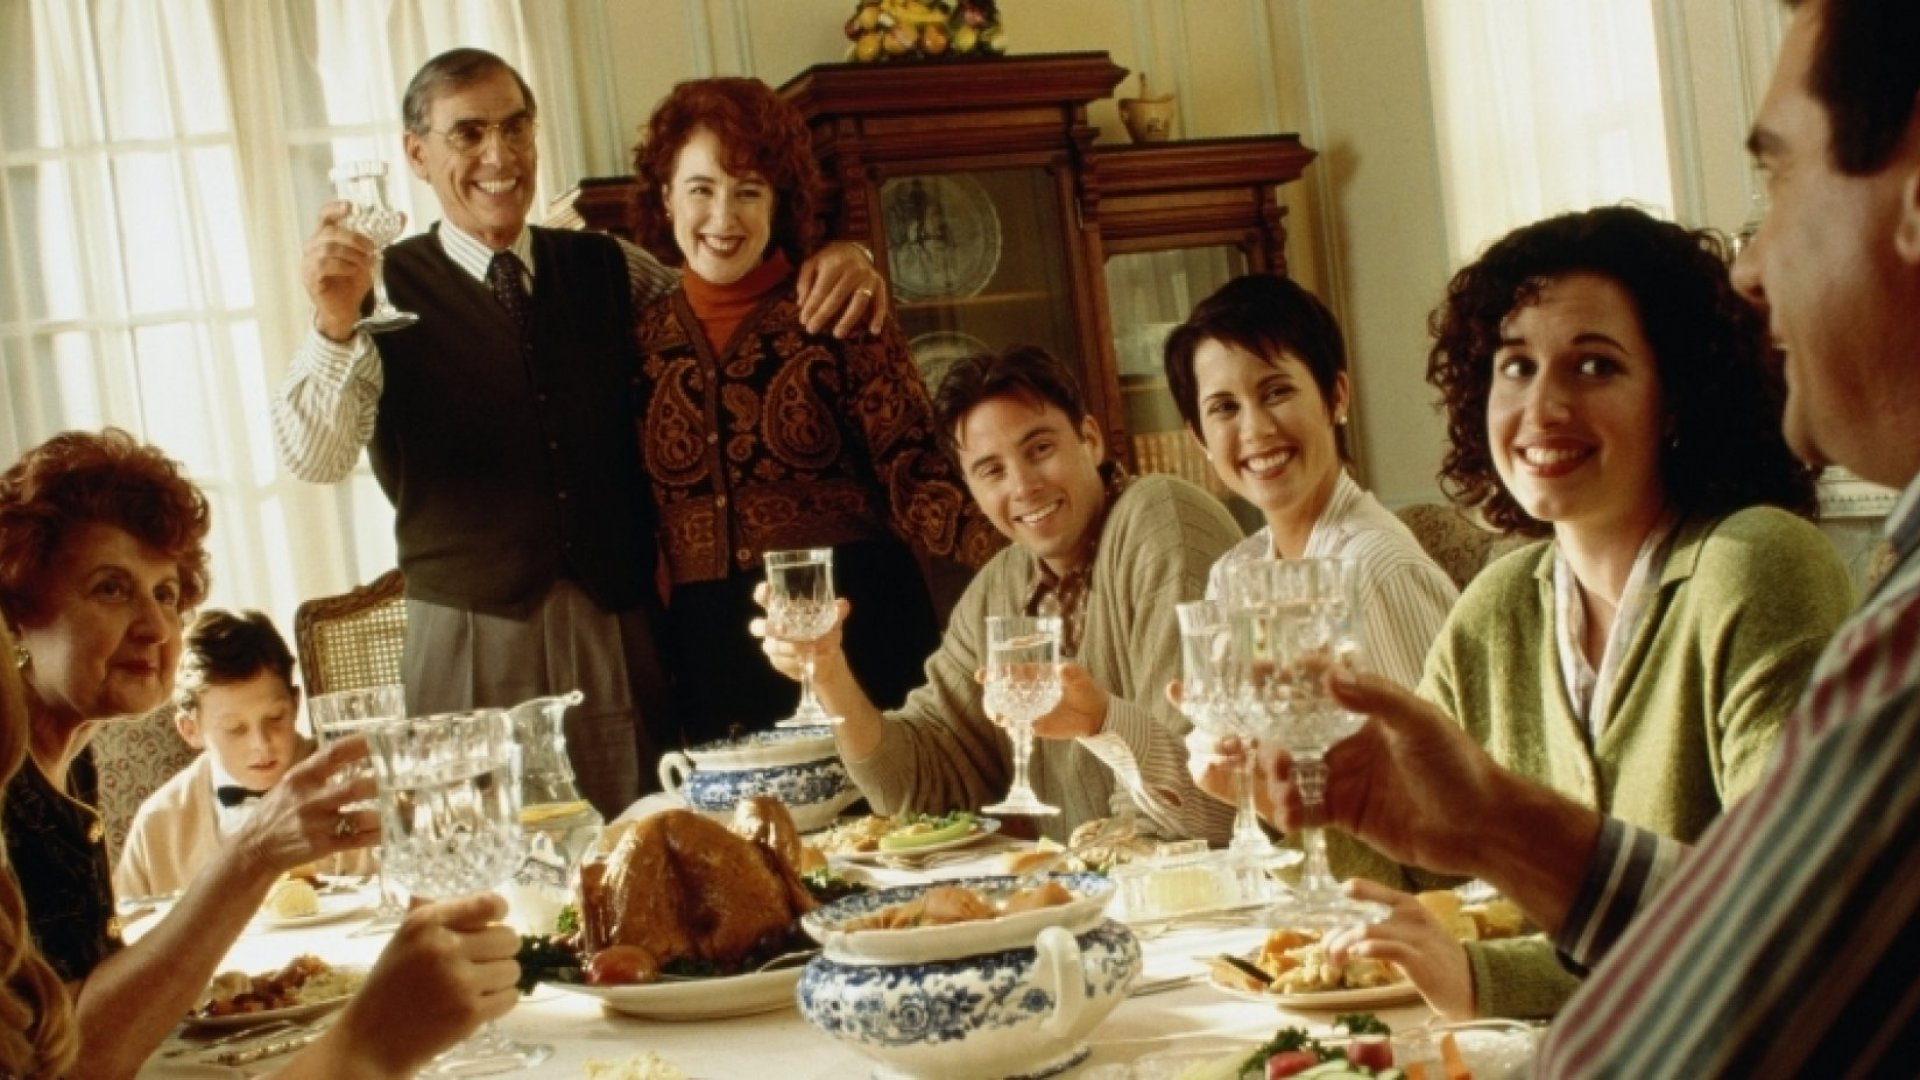 7 Ways to Stay Sane This Thanksgiving